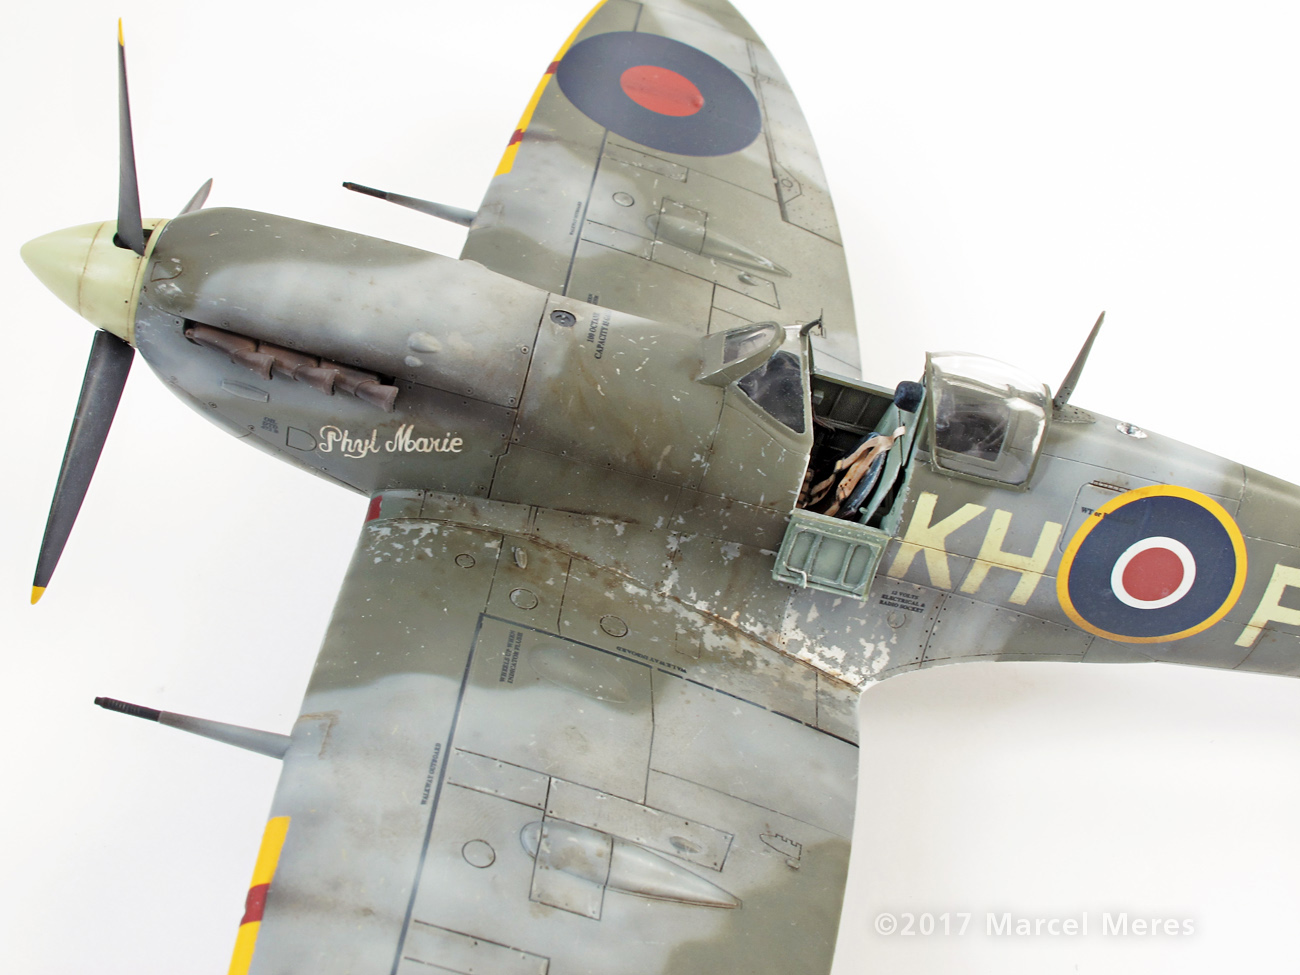 Spitfire Mk.Vb Tamiya 1/48 Phyl Marie, Close-up view, From Wing, Port side